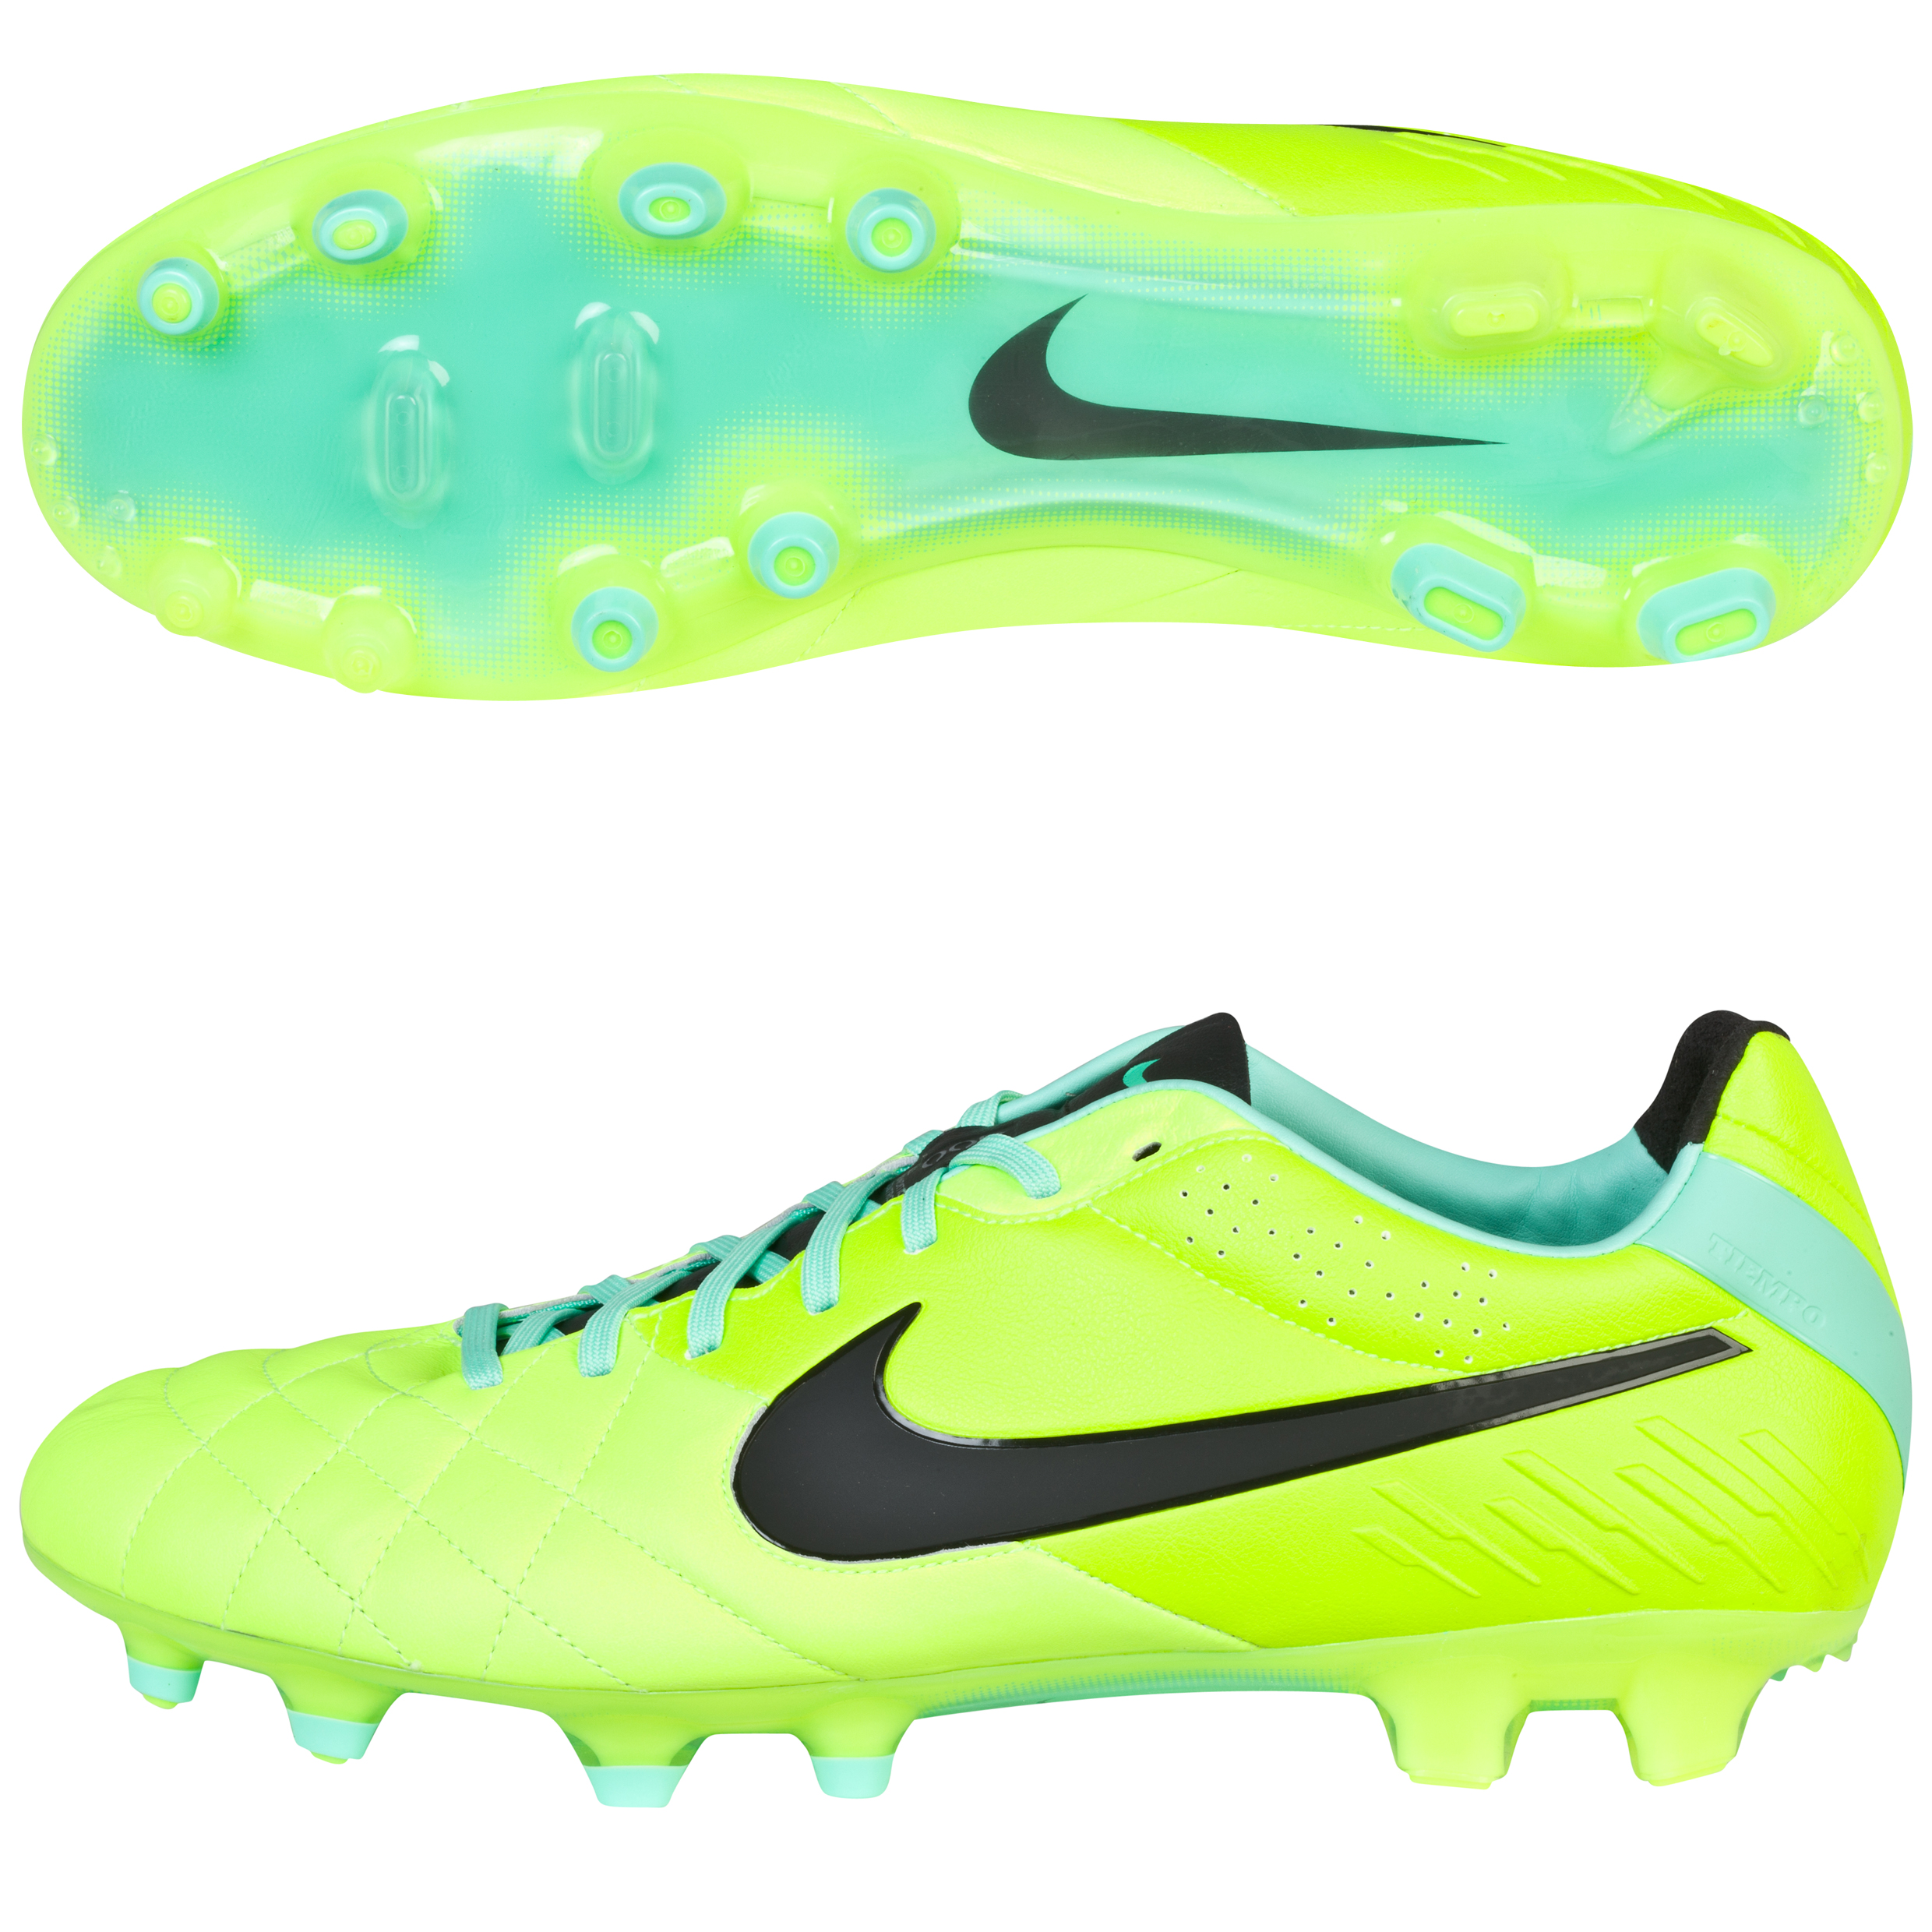 Nike Tiempo Legend Iv Firm Ground Football Boots -Volt/Black/Green Glow Lt Green